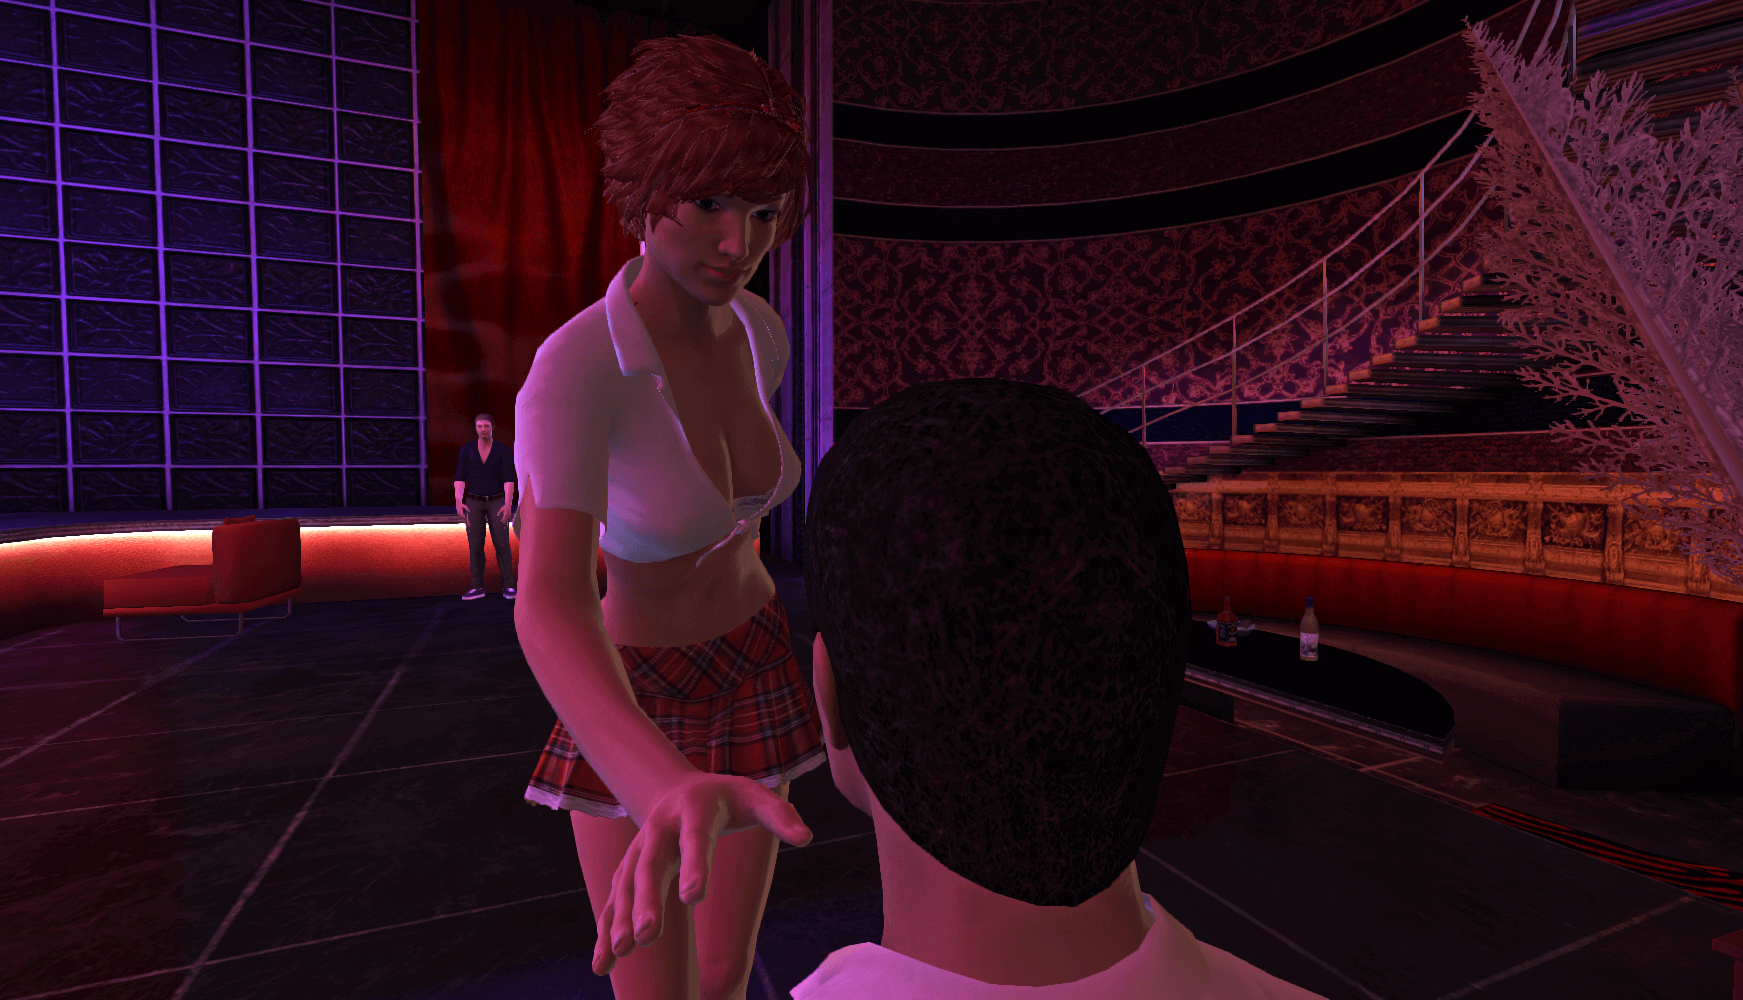 3d sex virtual games mac